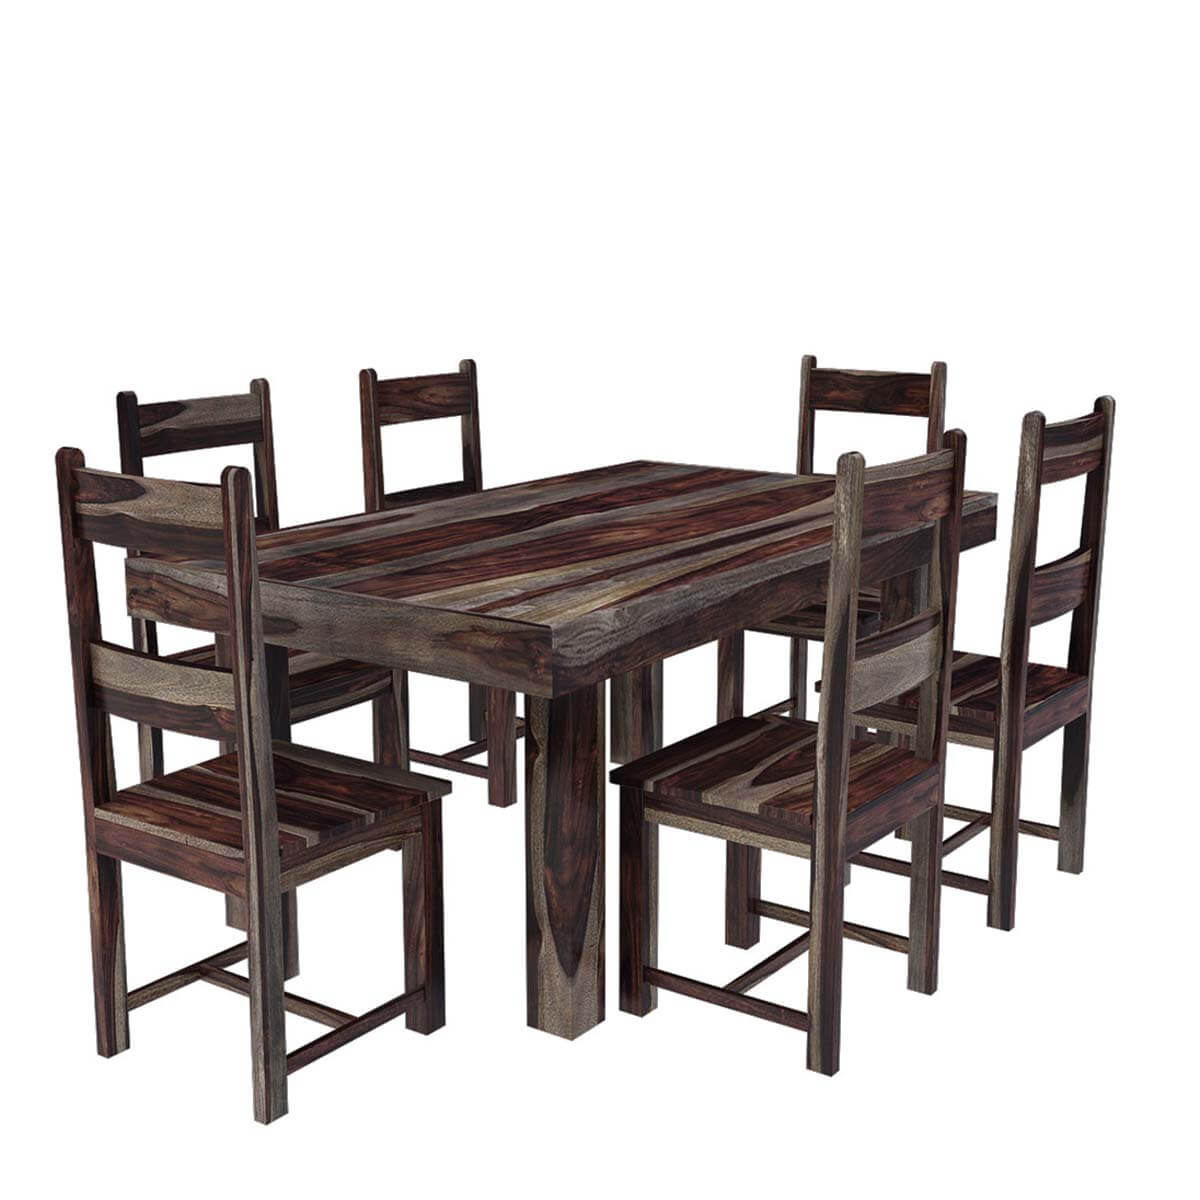 rustic dining table and chairs kids baseball chair frisco modern solid wood casual room